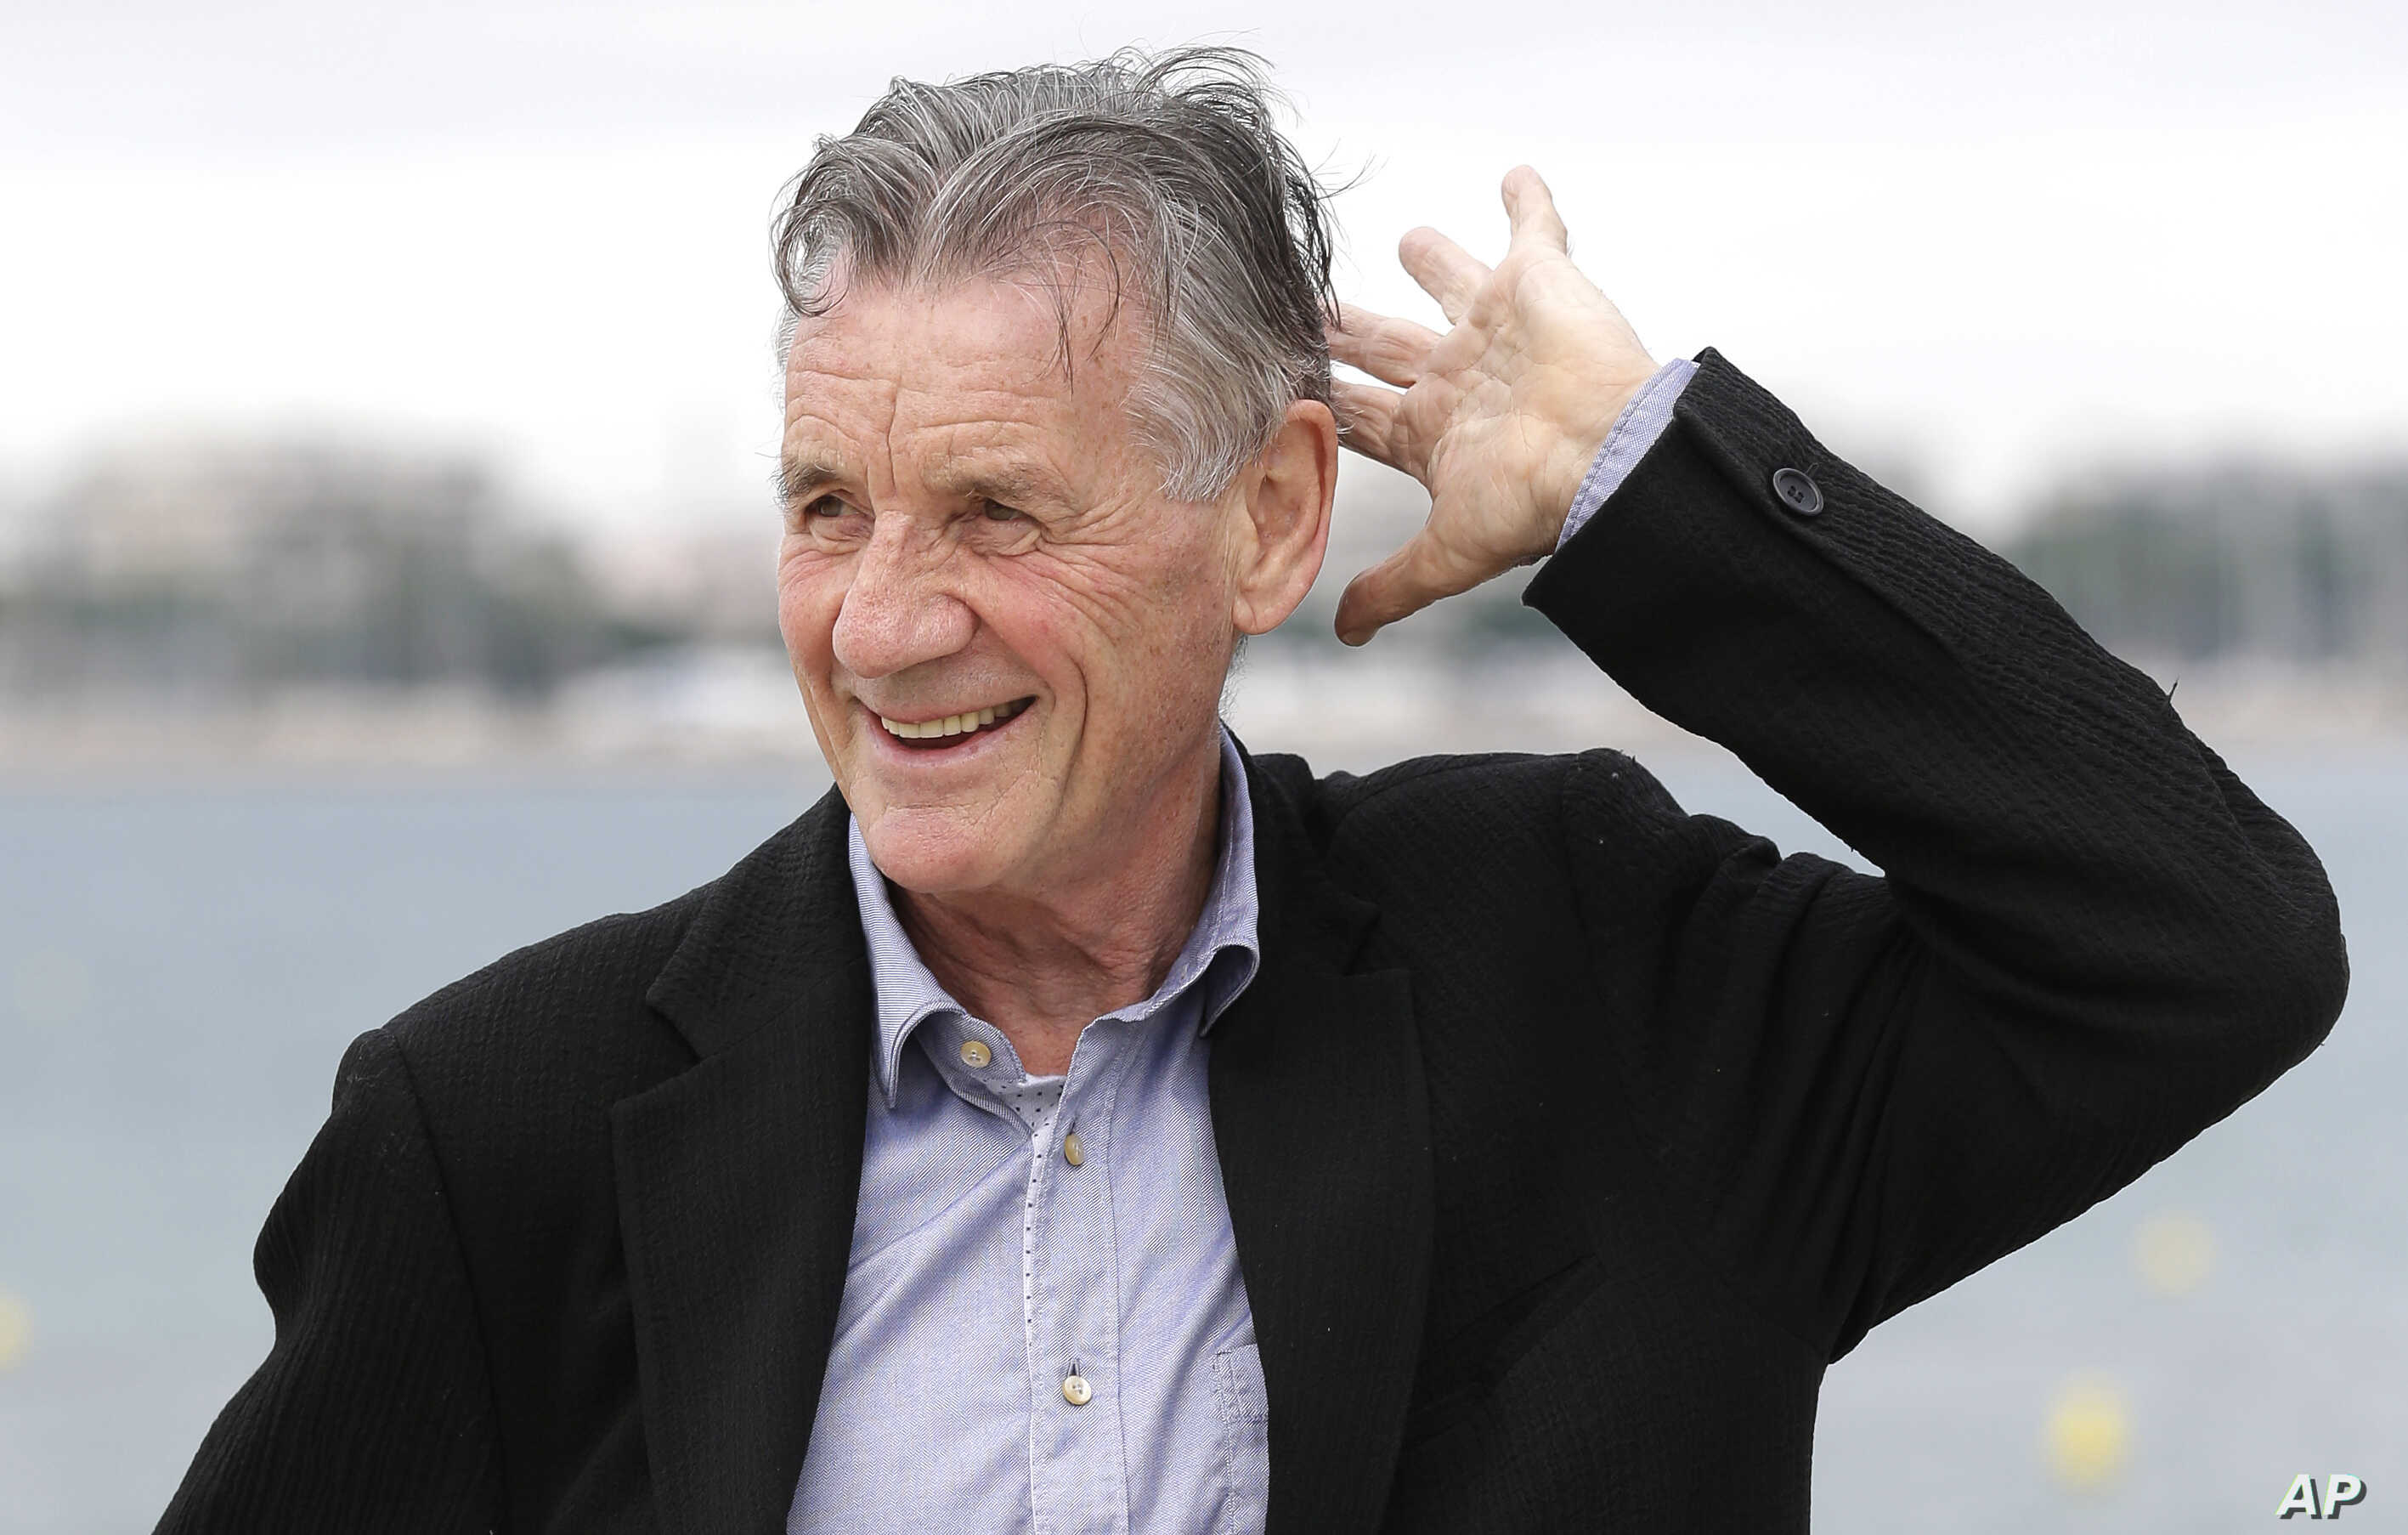 English comedian, actor, writer and television presenter Michael Palin poses during a press conference  in Cannes,  France,  Oct. 6, 2015.